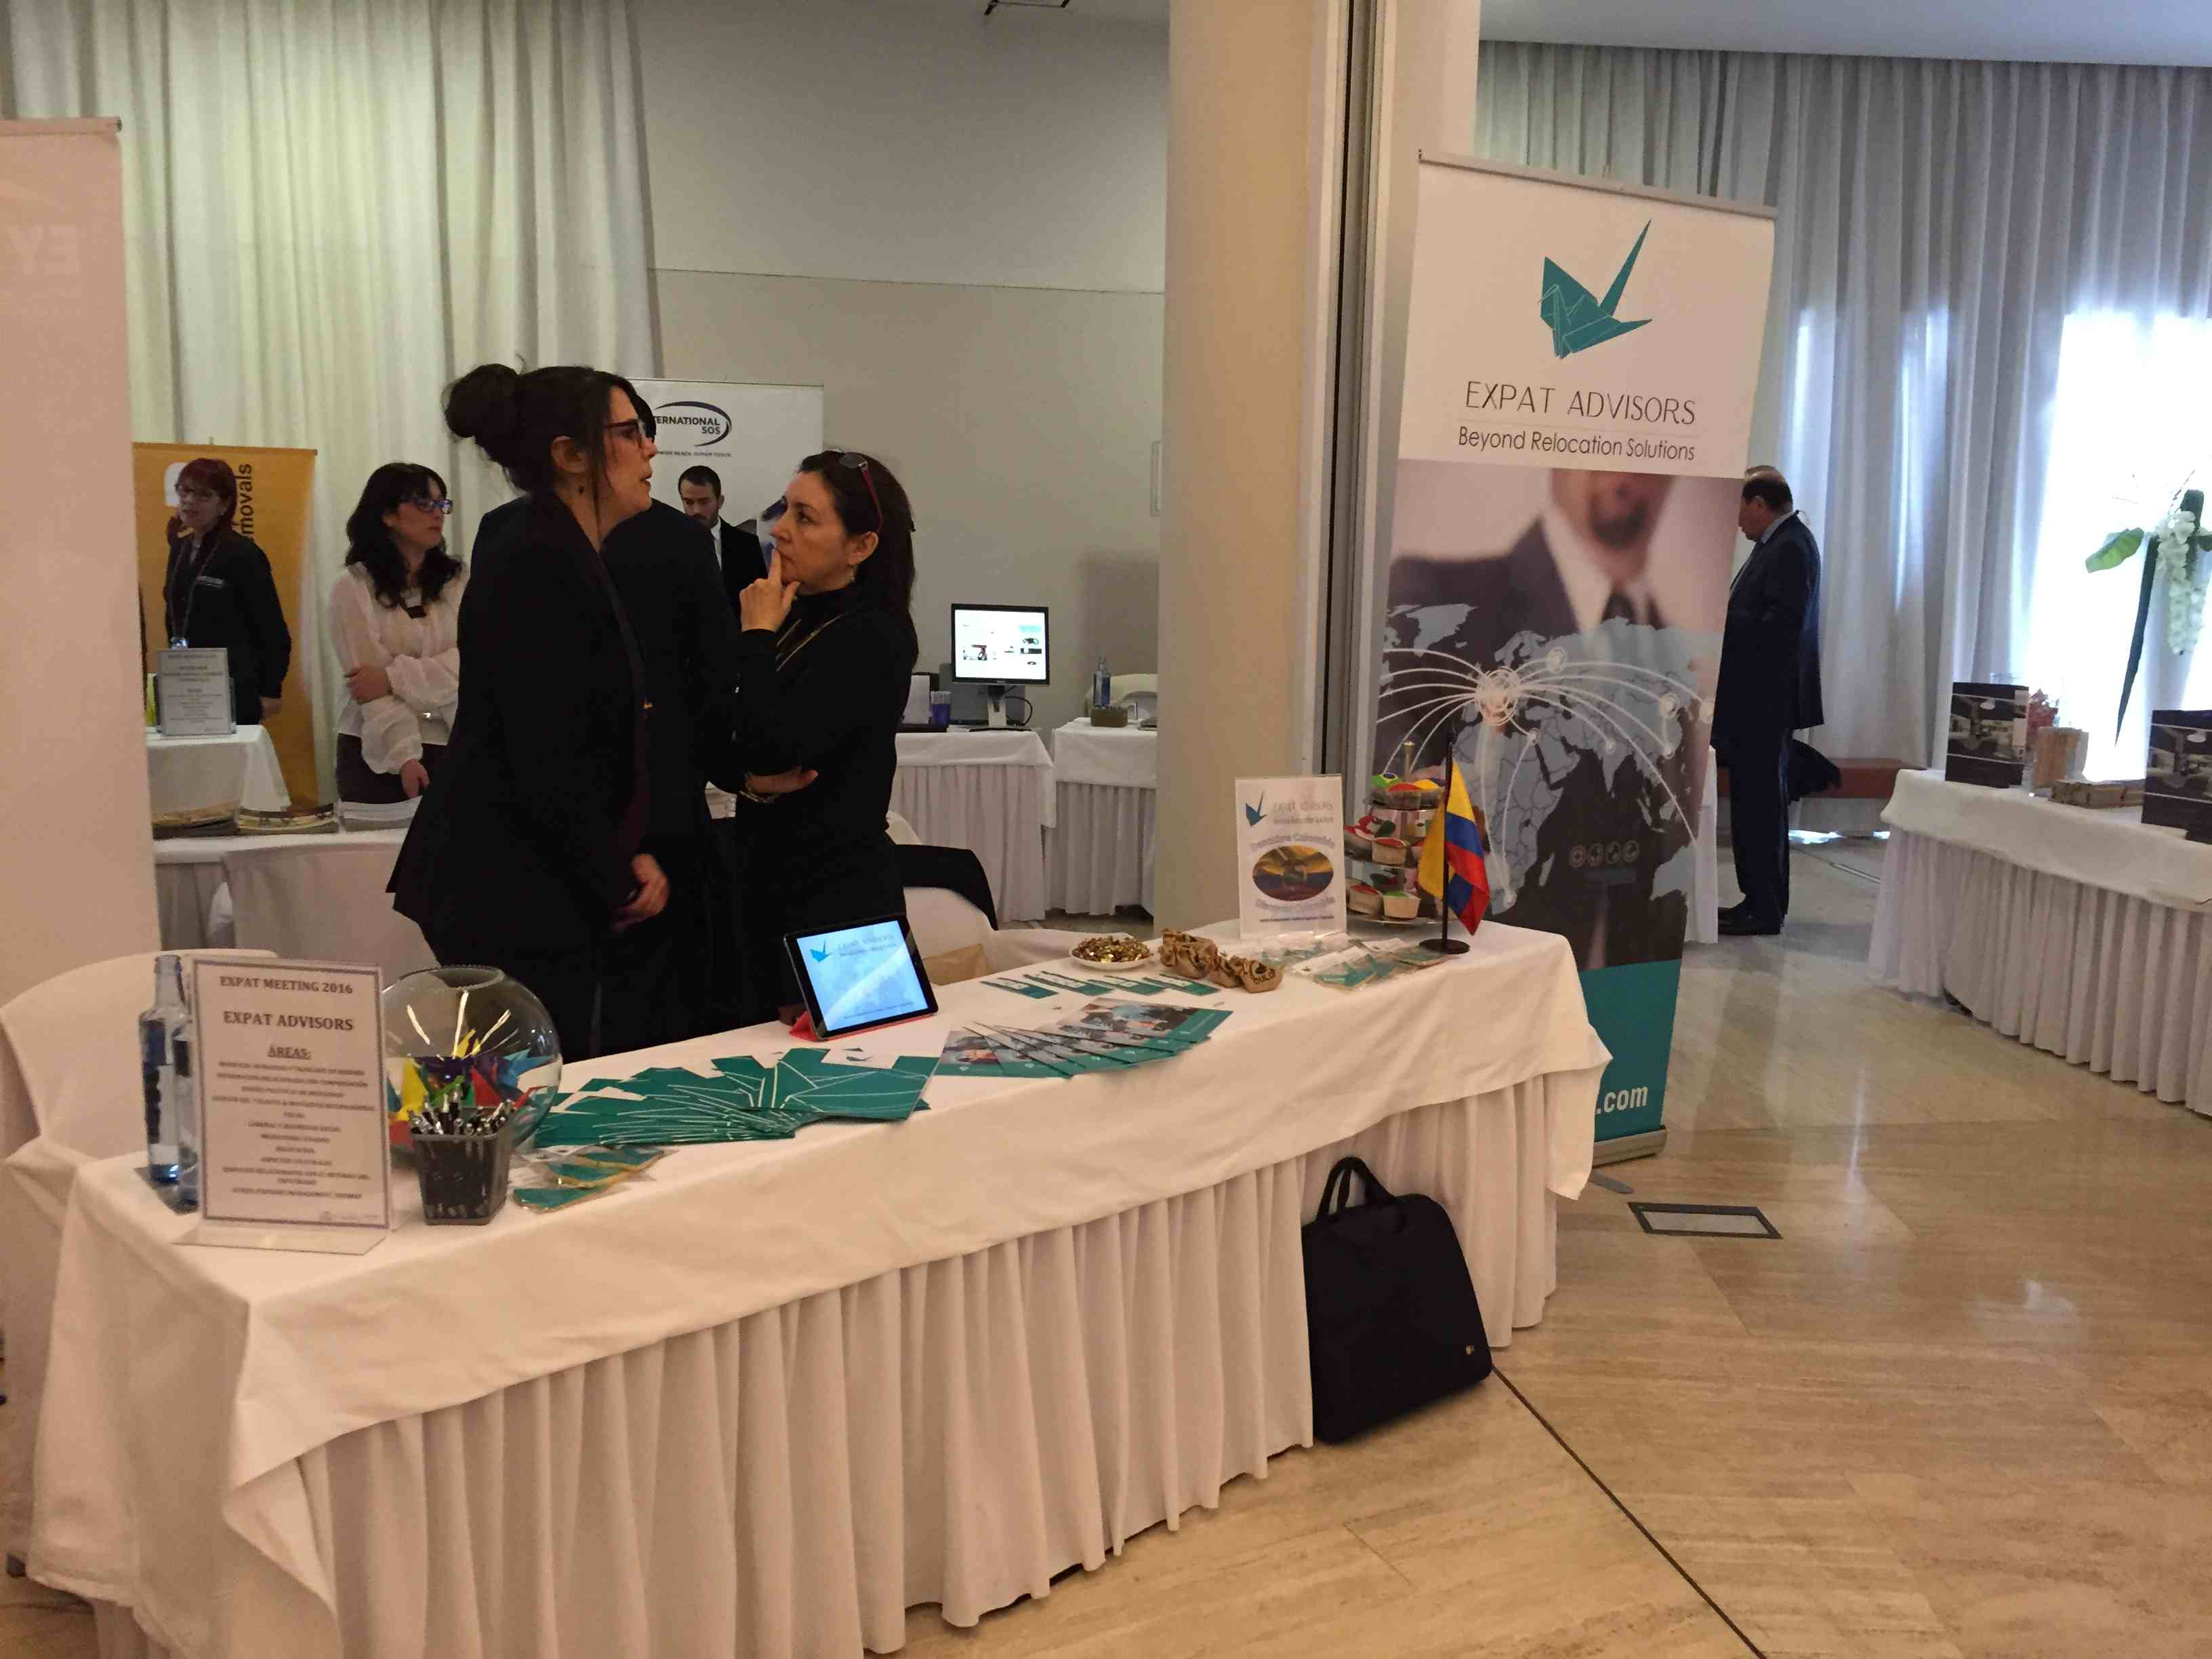 V-Feria-Expat-Meeting-2016-9